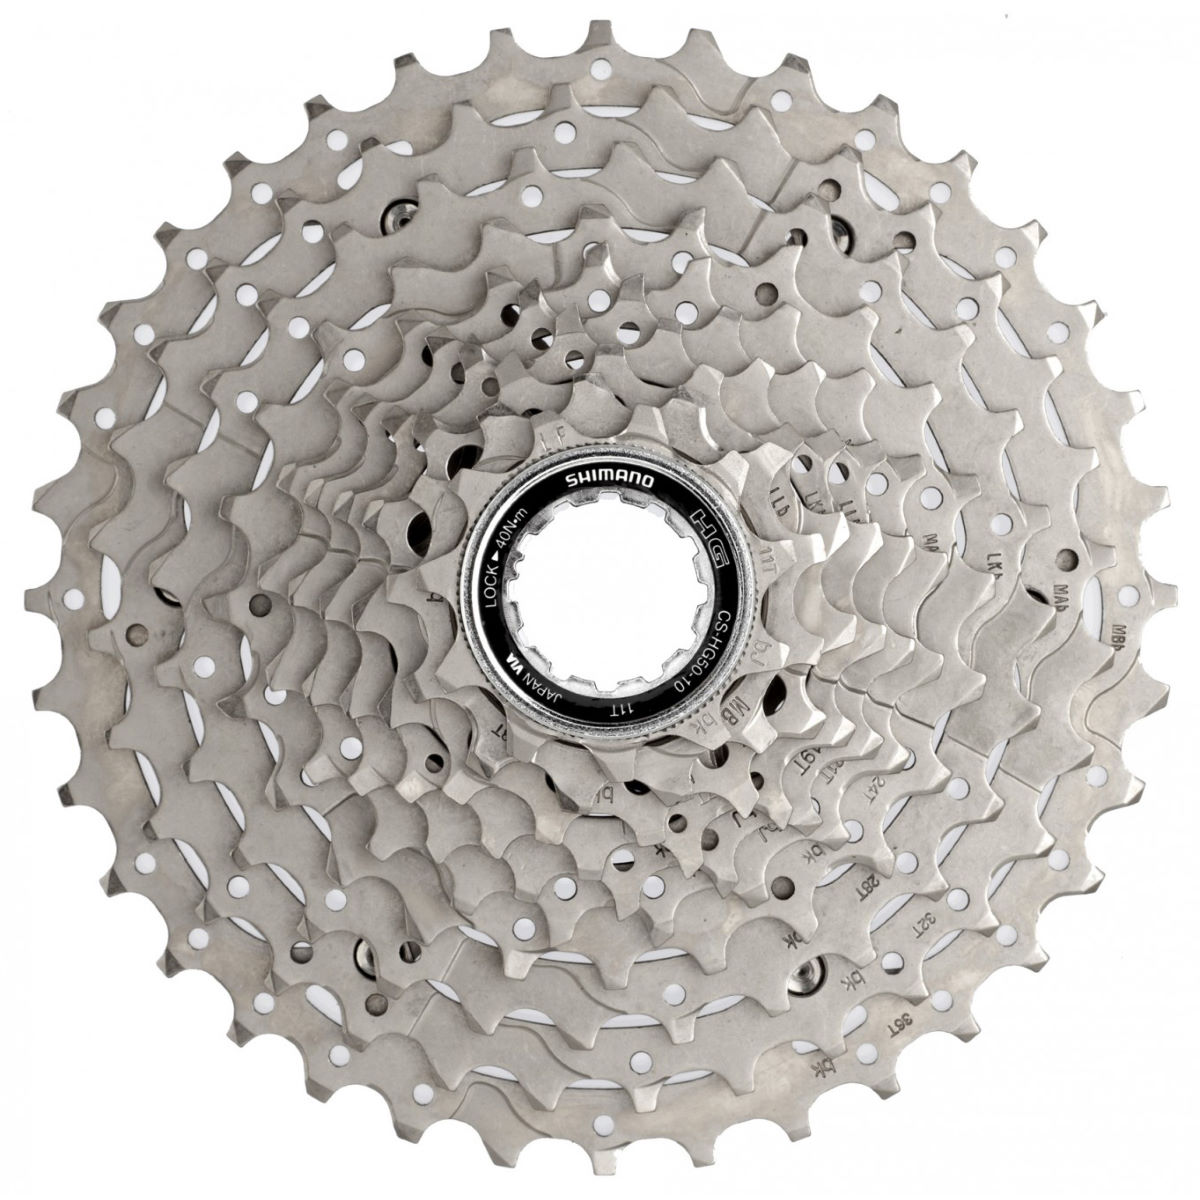 Shimano Deore HG50 10 Speed MTB Cassette   Cassettes